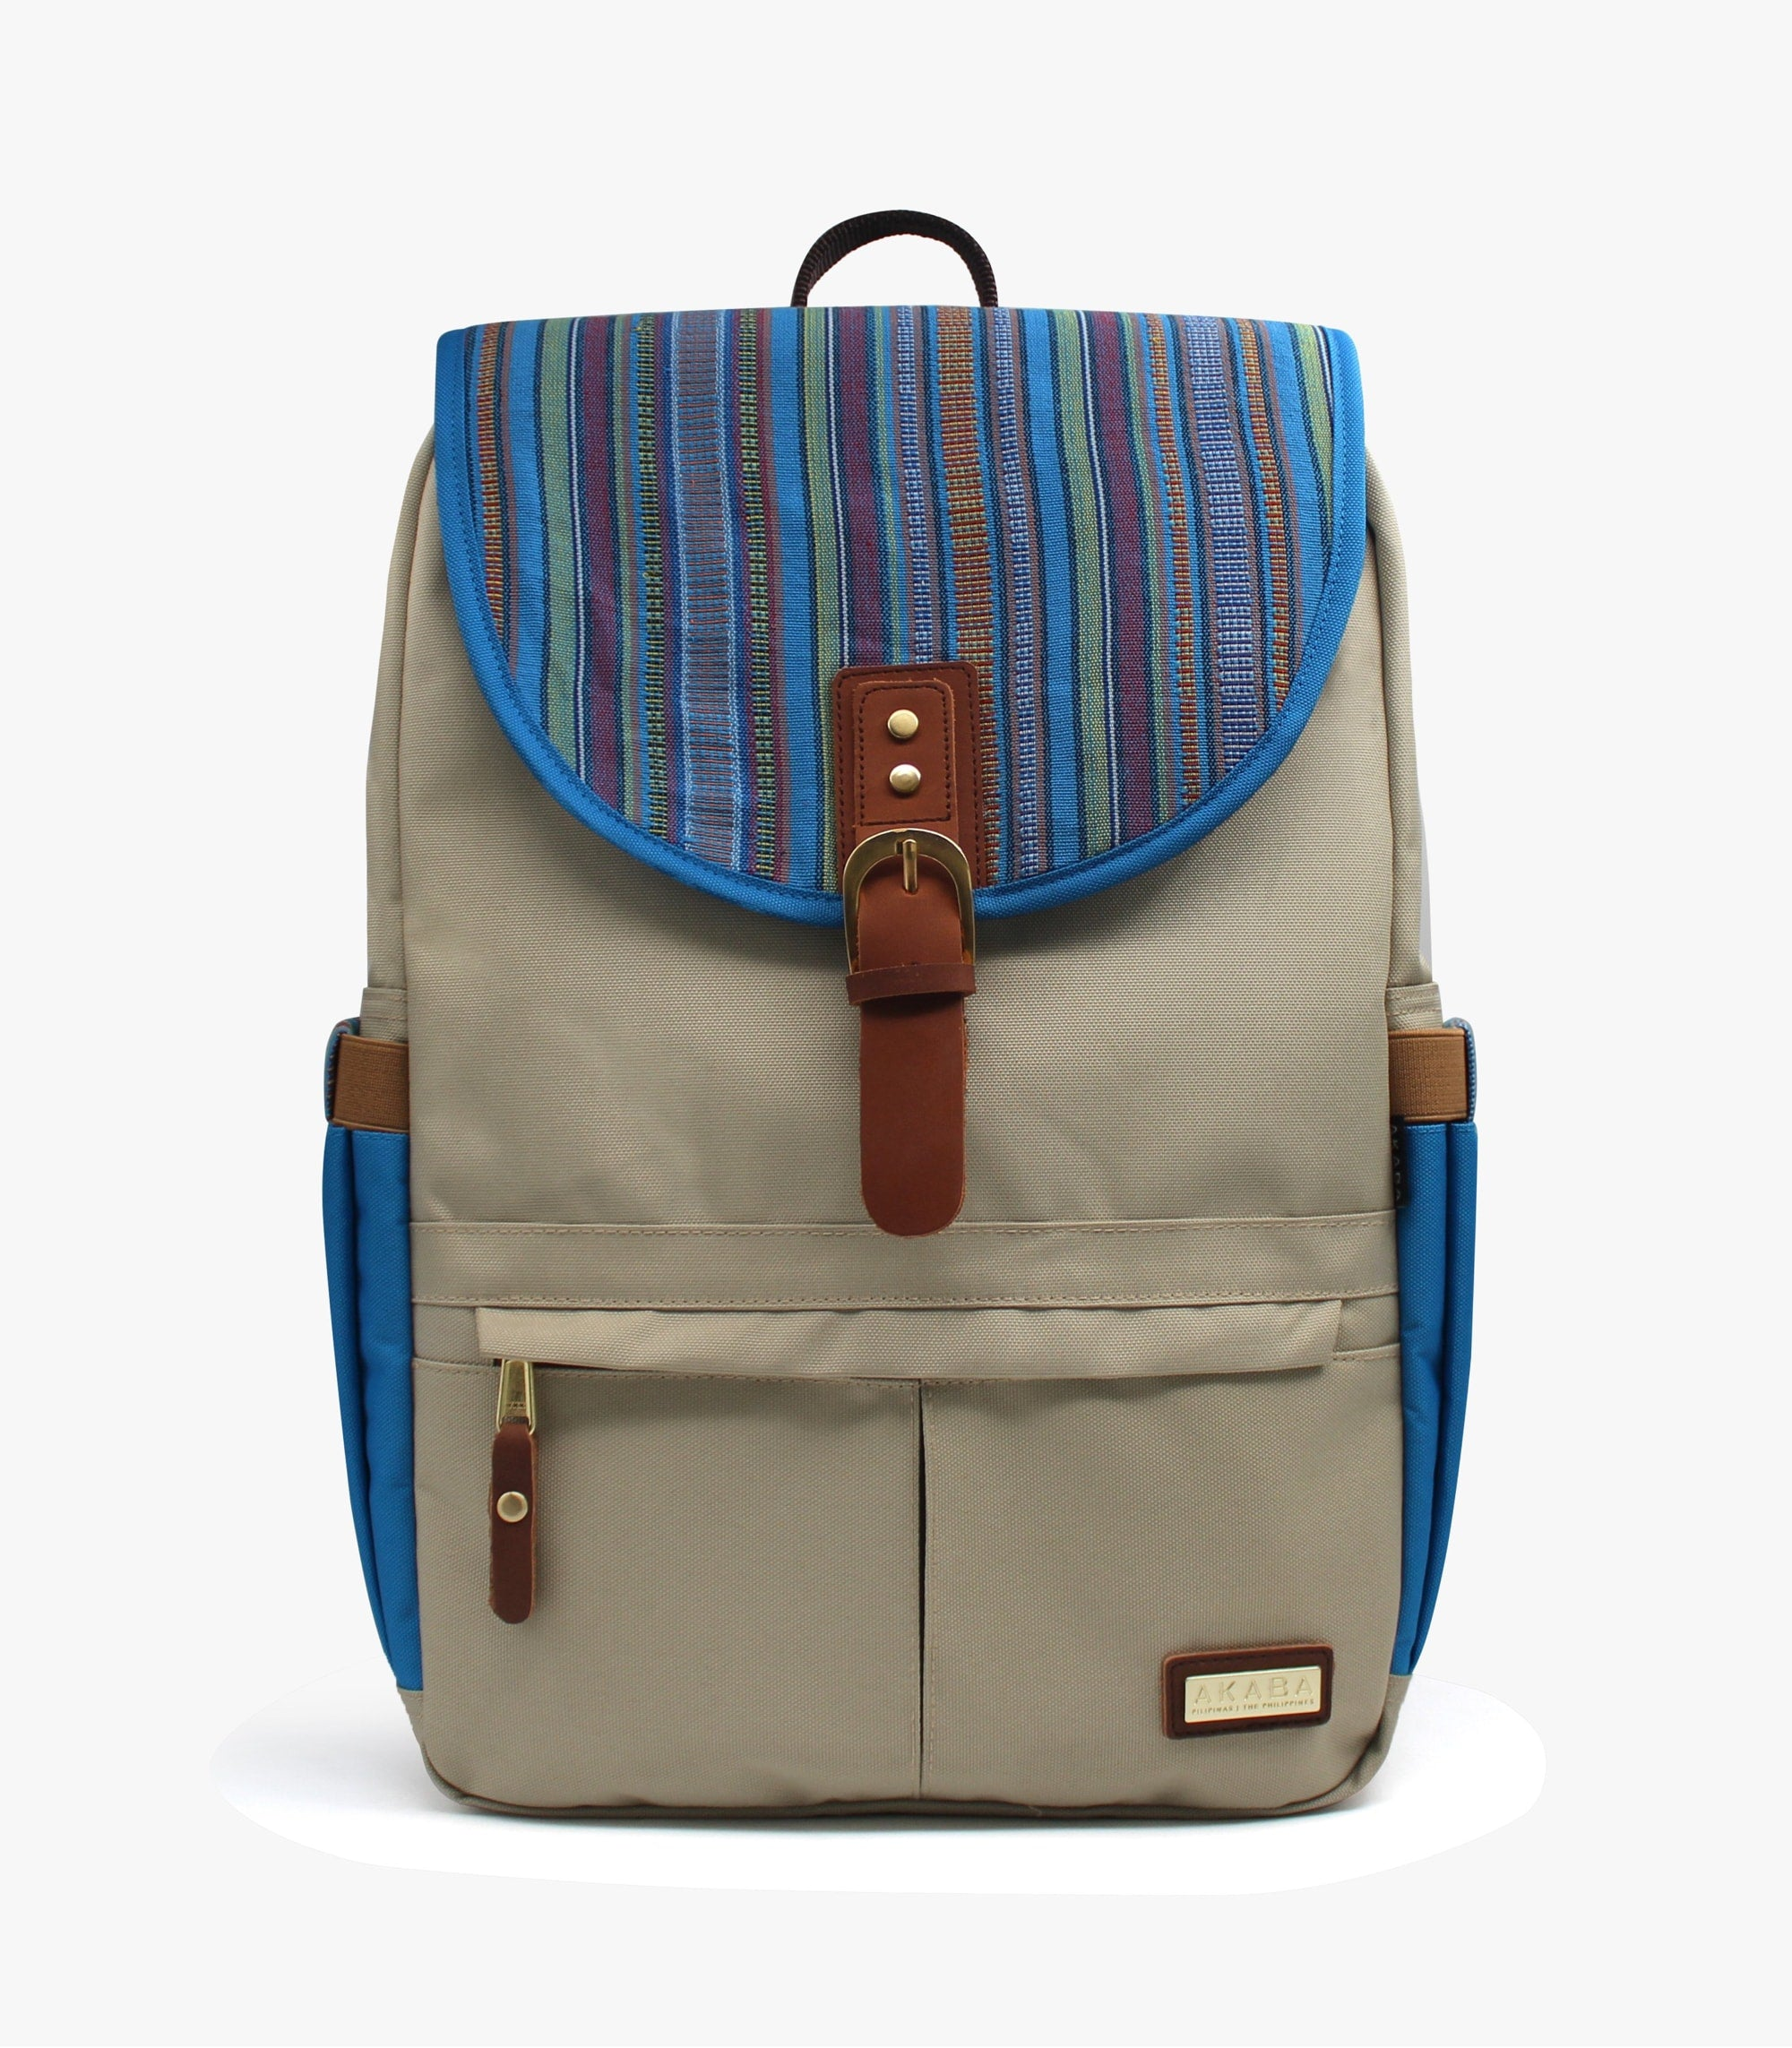 Camino Dos Backpack - AKABA - Blue Cerulean